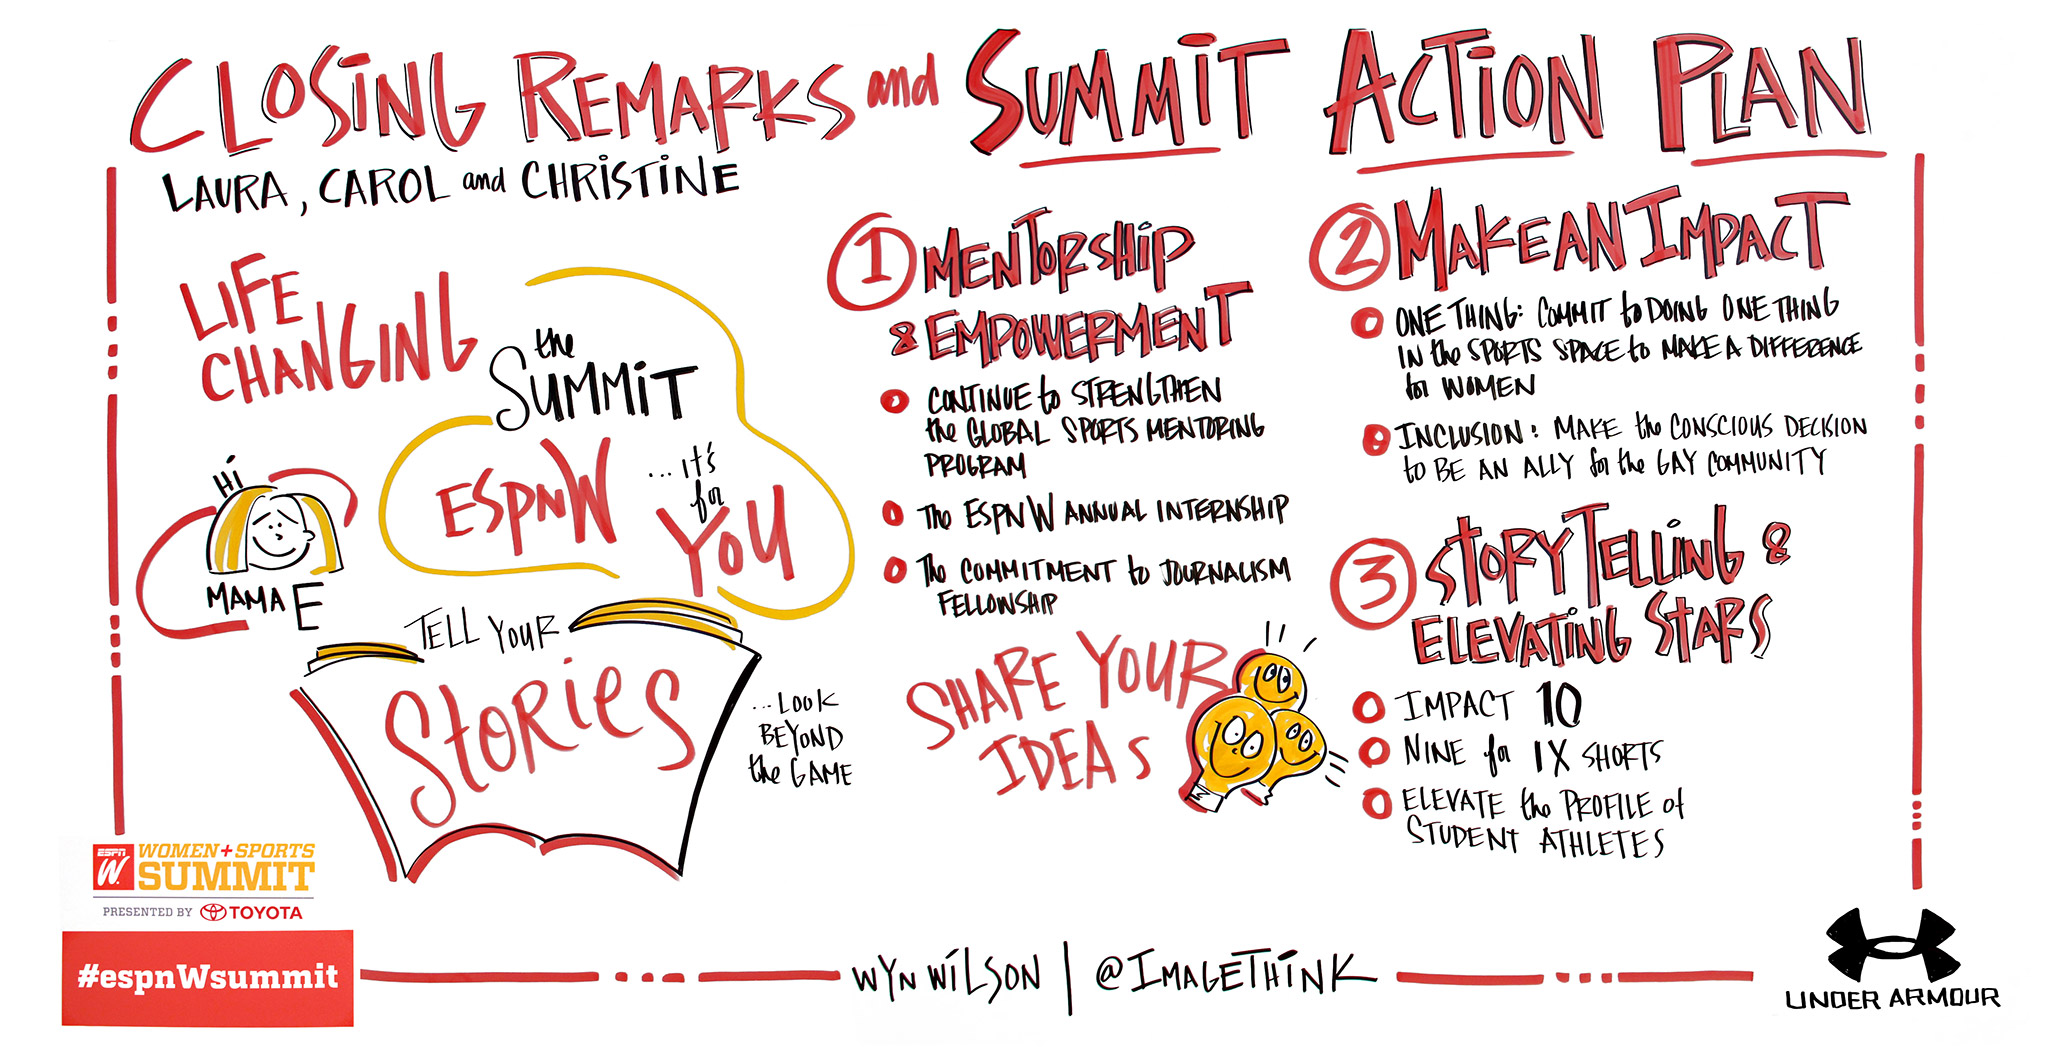 espnW founder Laura Gentile, ESPN CFO Christine Driessen and espnW VP Carol Stiff shared three action steps for advancing the dialogue around women in sports and creating positive change.